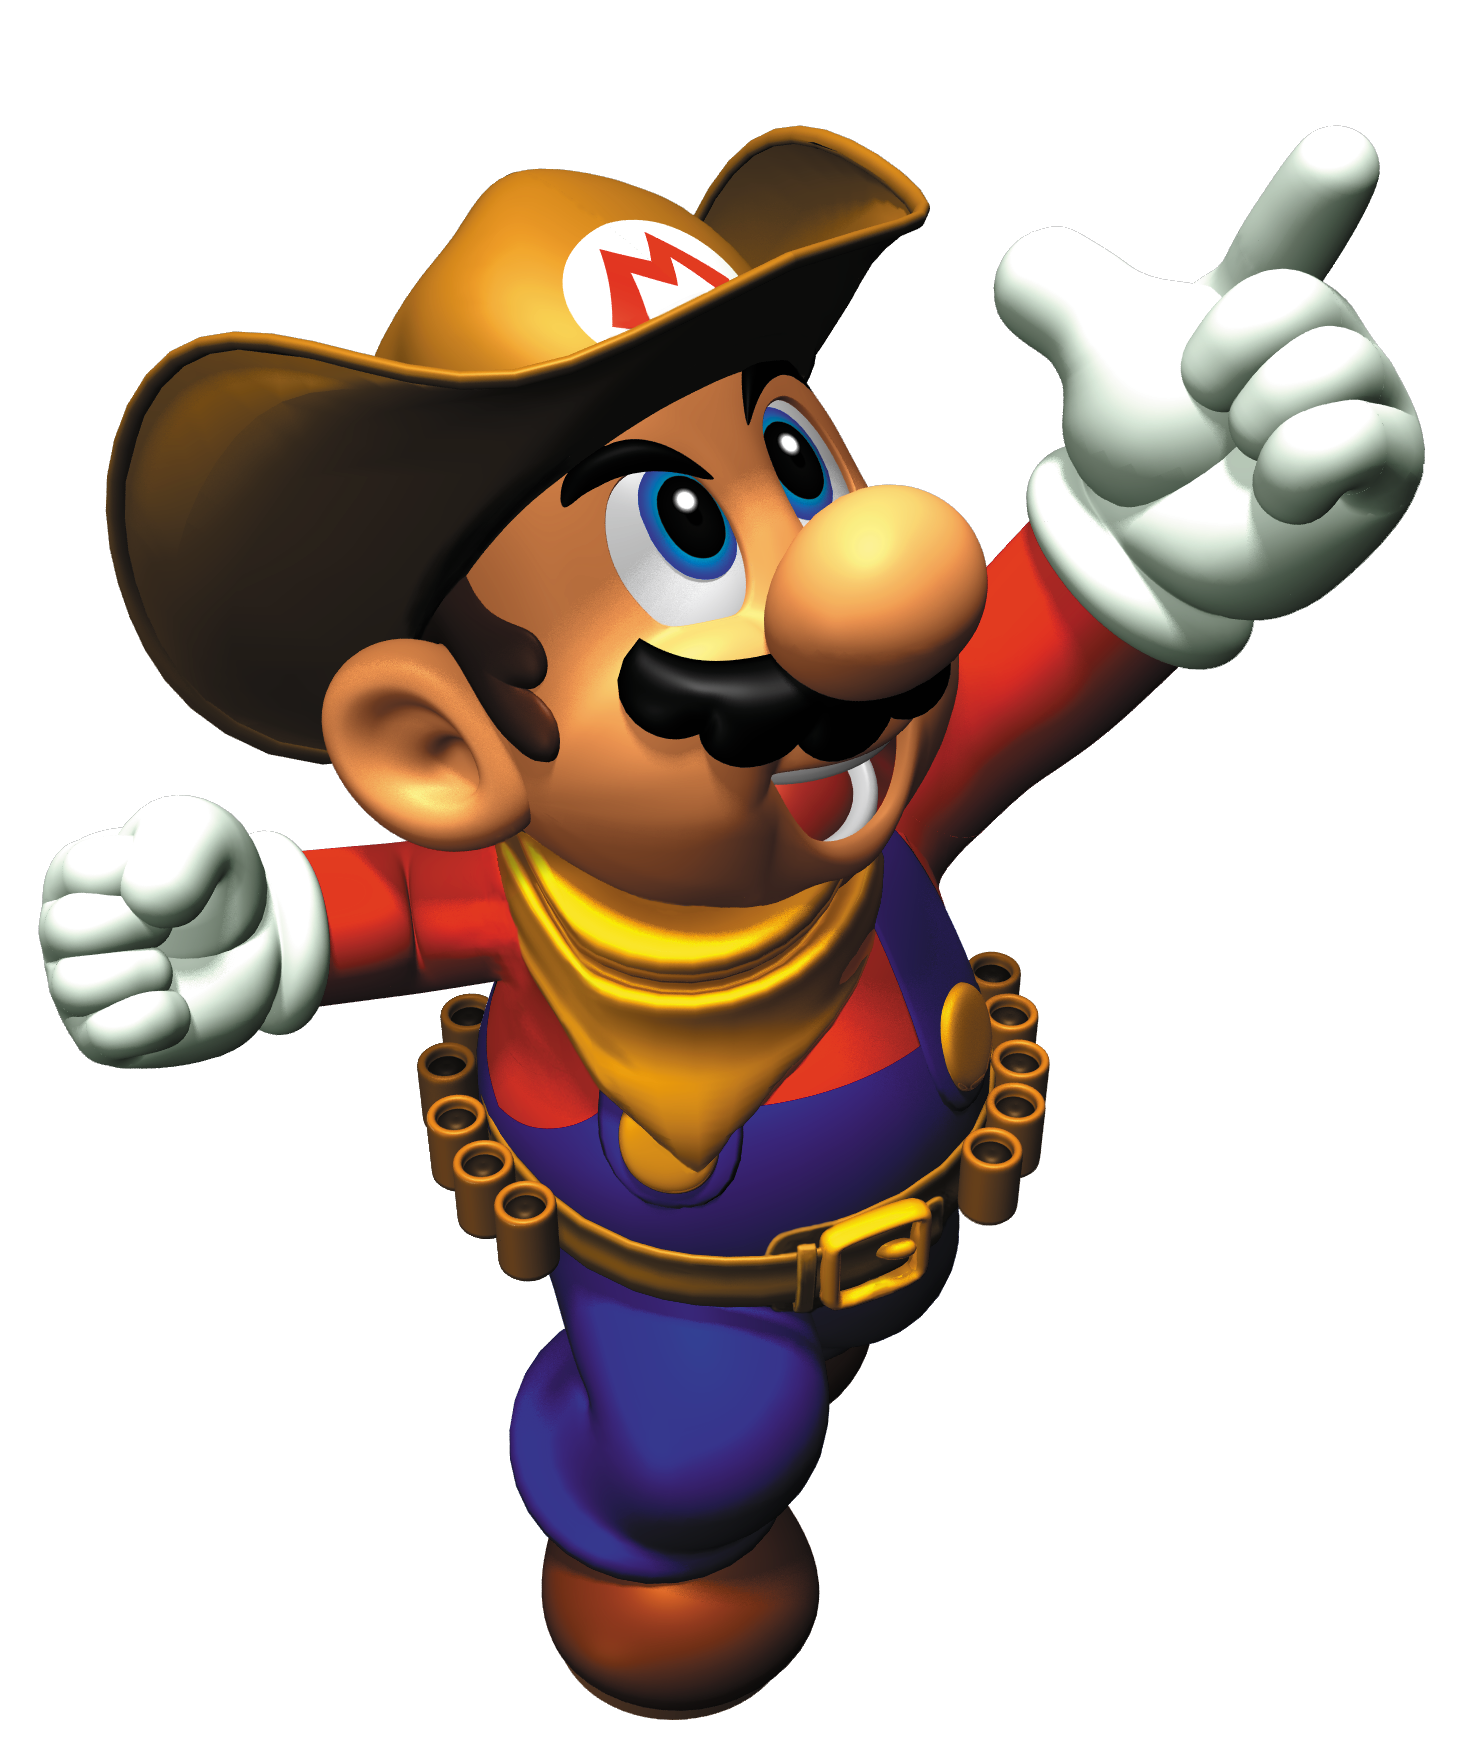 Mario party 2 png. Image cowboy artwork ememies